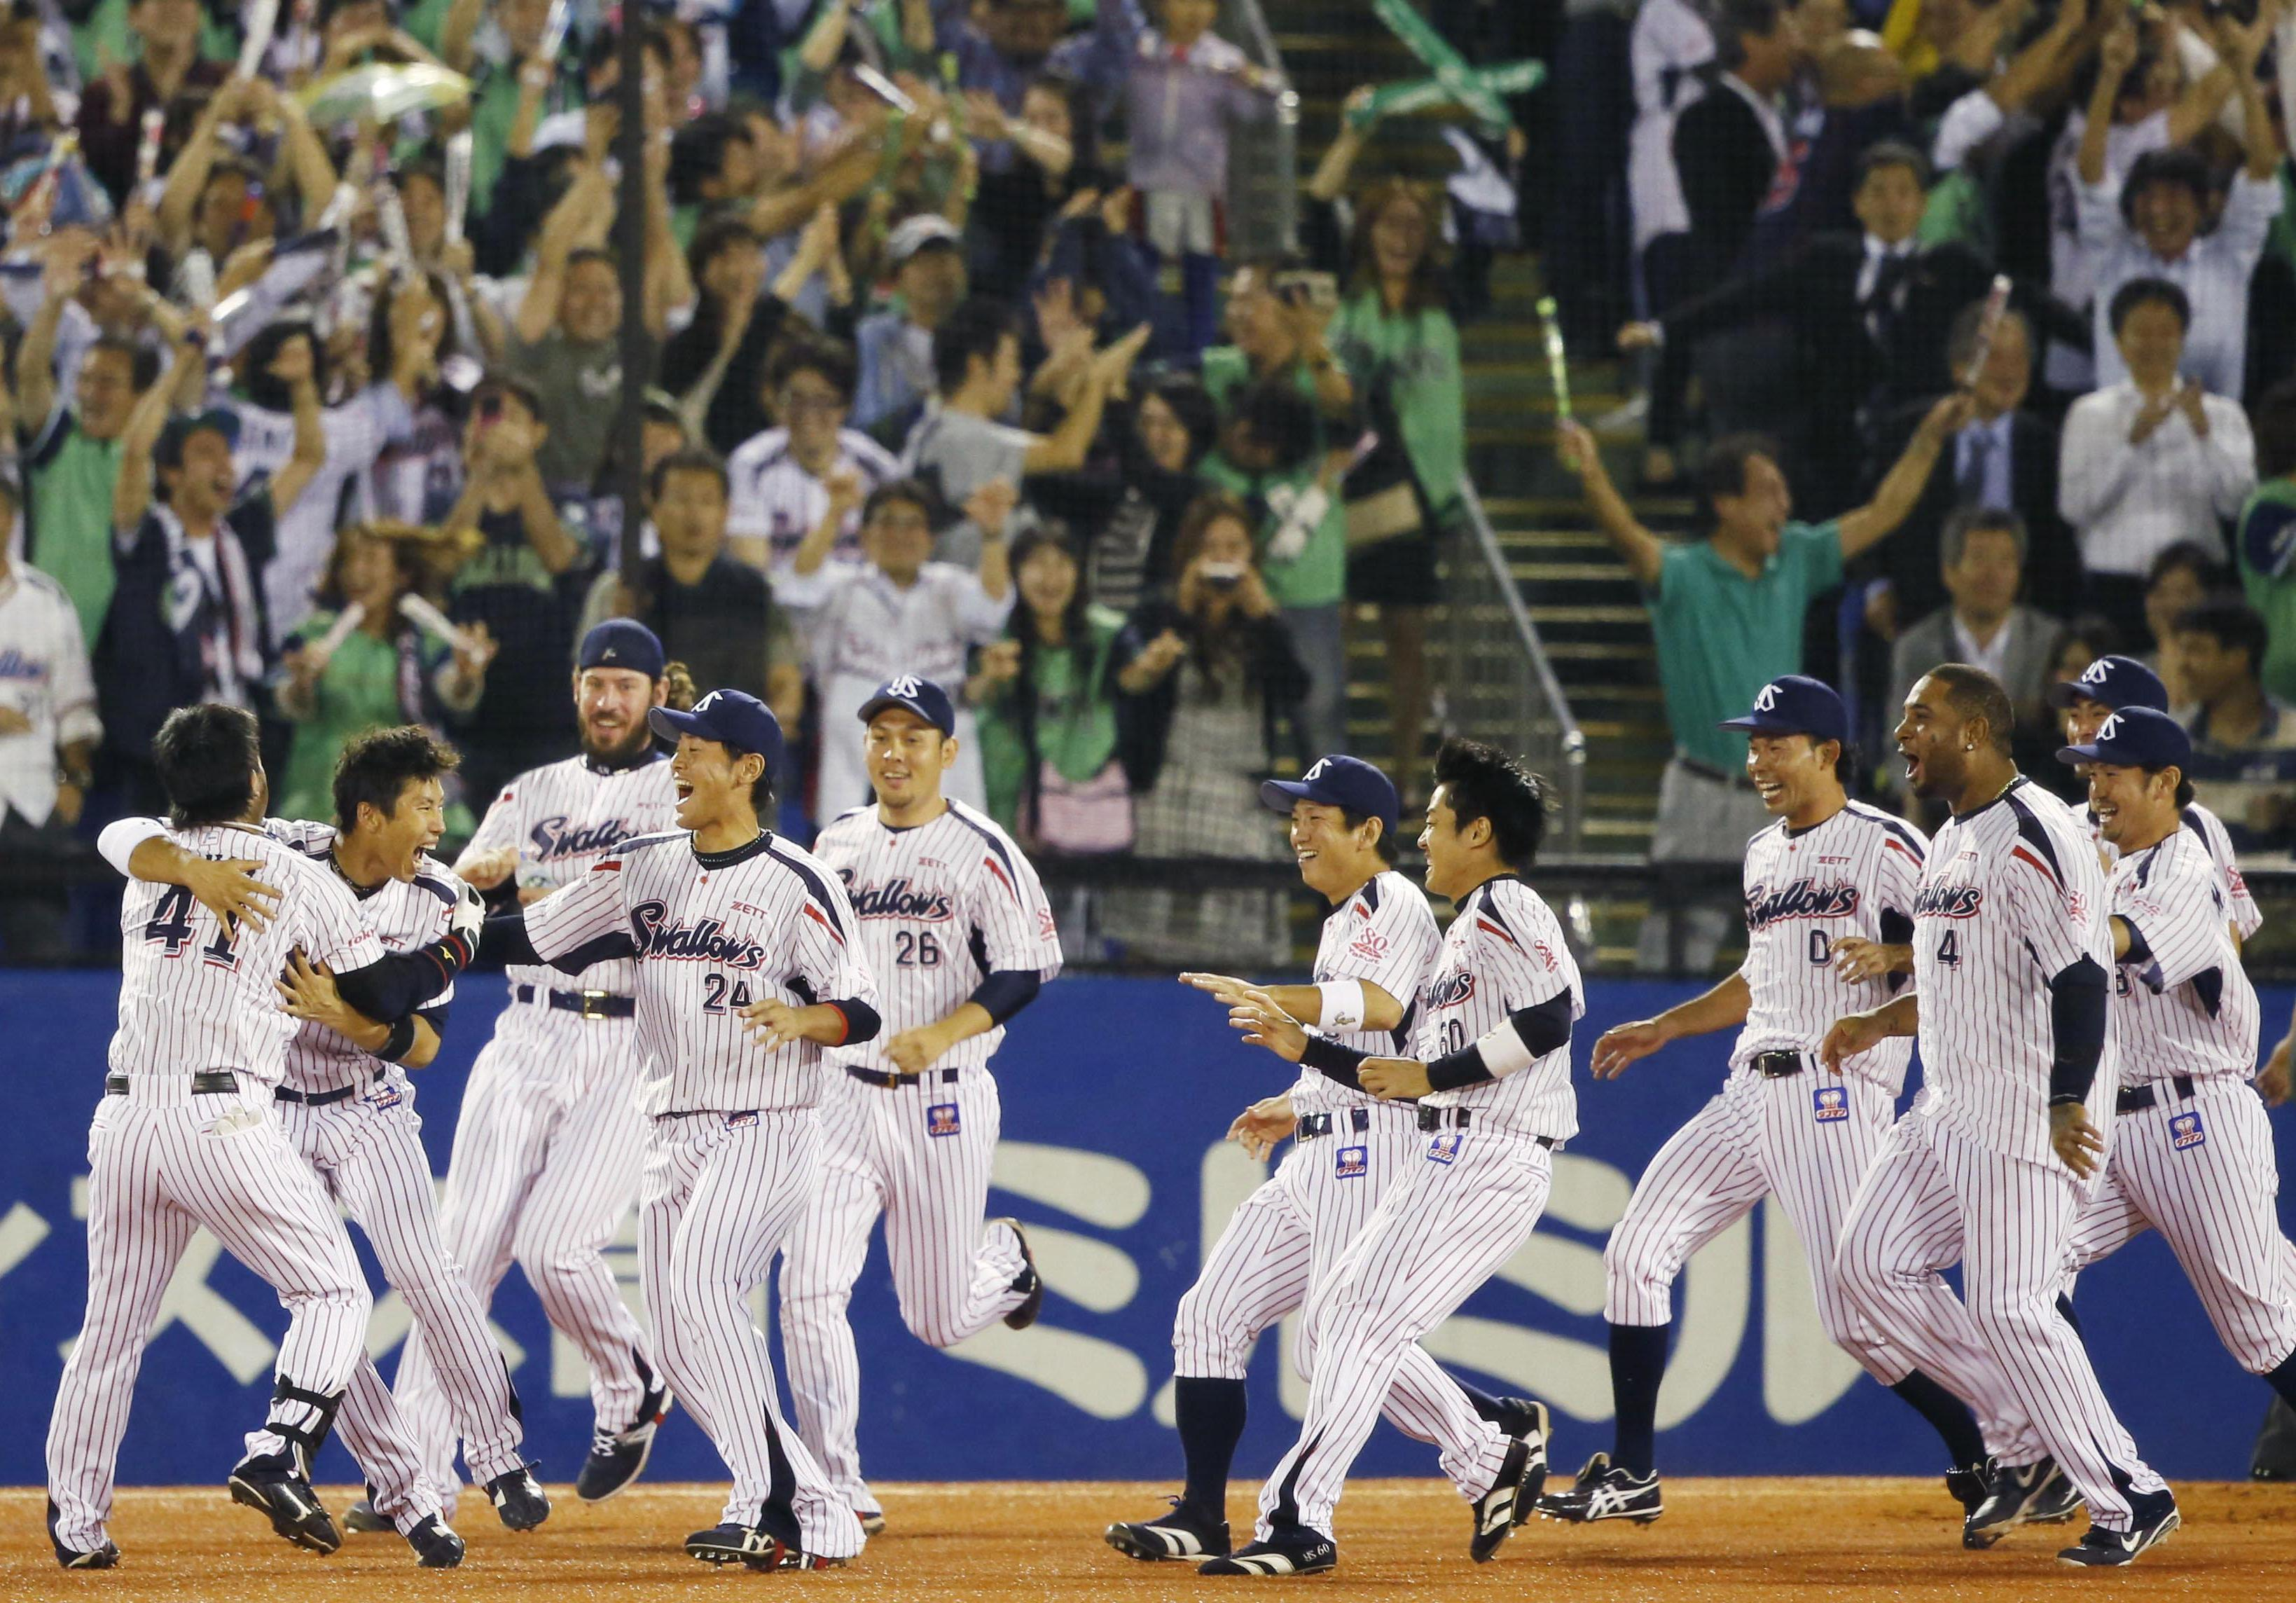 The Tokyo Yakult Swallows celebrate becoming the Central League champions on Friday night at Jingu Stadium. The Swallows defeated the Hanshin Tigers 2-1 in 11 innings to clinch the pennant. | KYODO